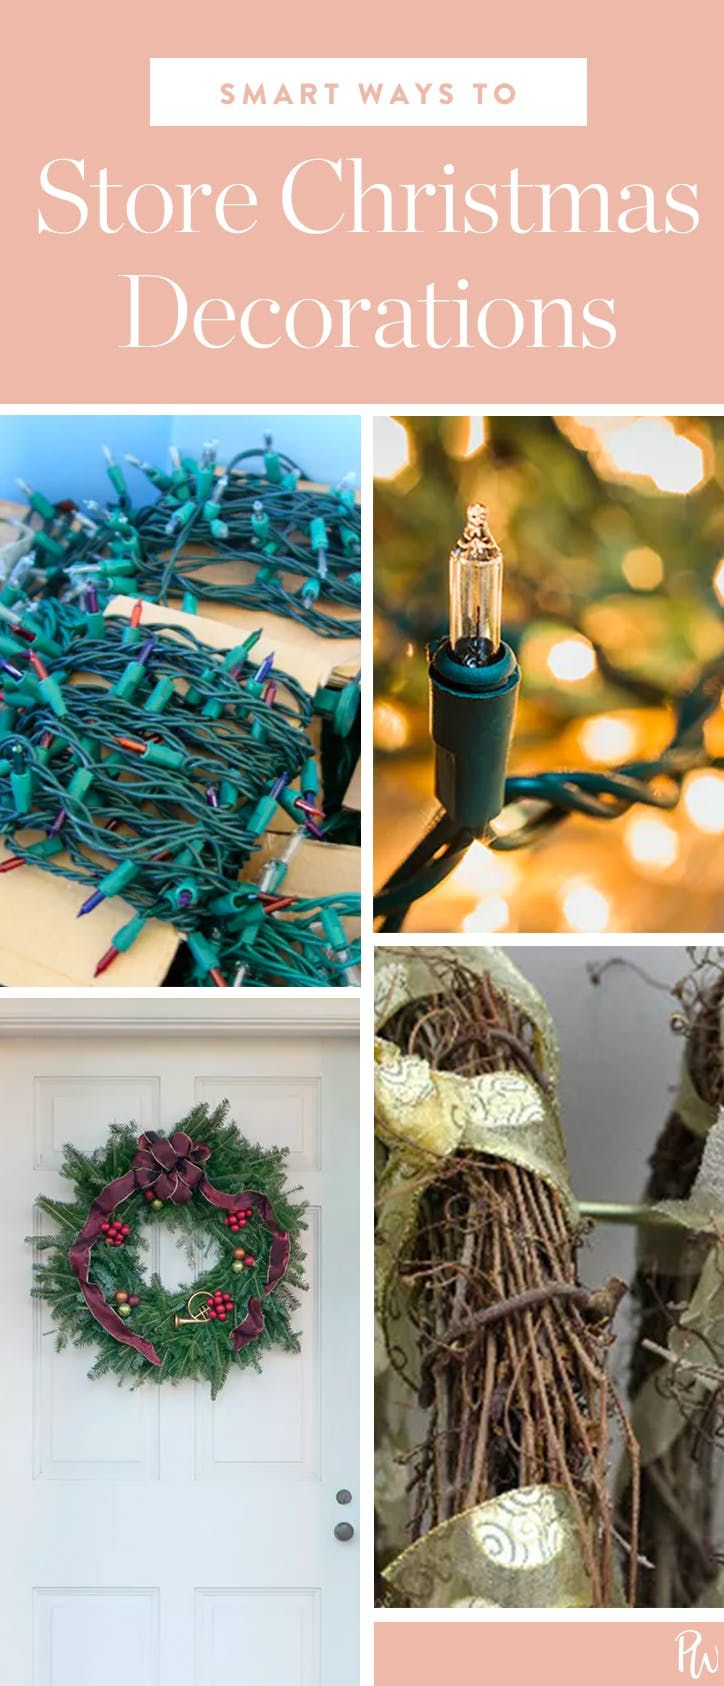 Pretty Christmas Decor You Can Make Yourself Storing Christmas Decorations Holiday Organization Christmas Decorations